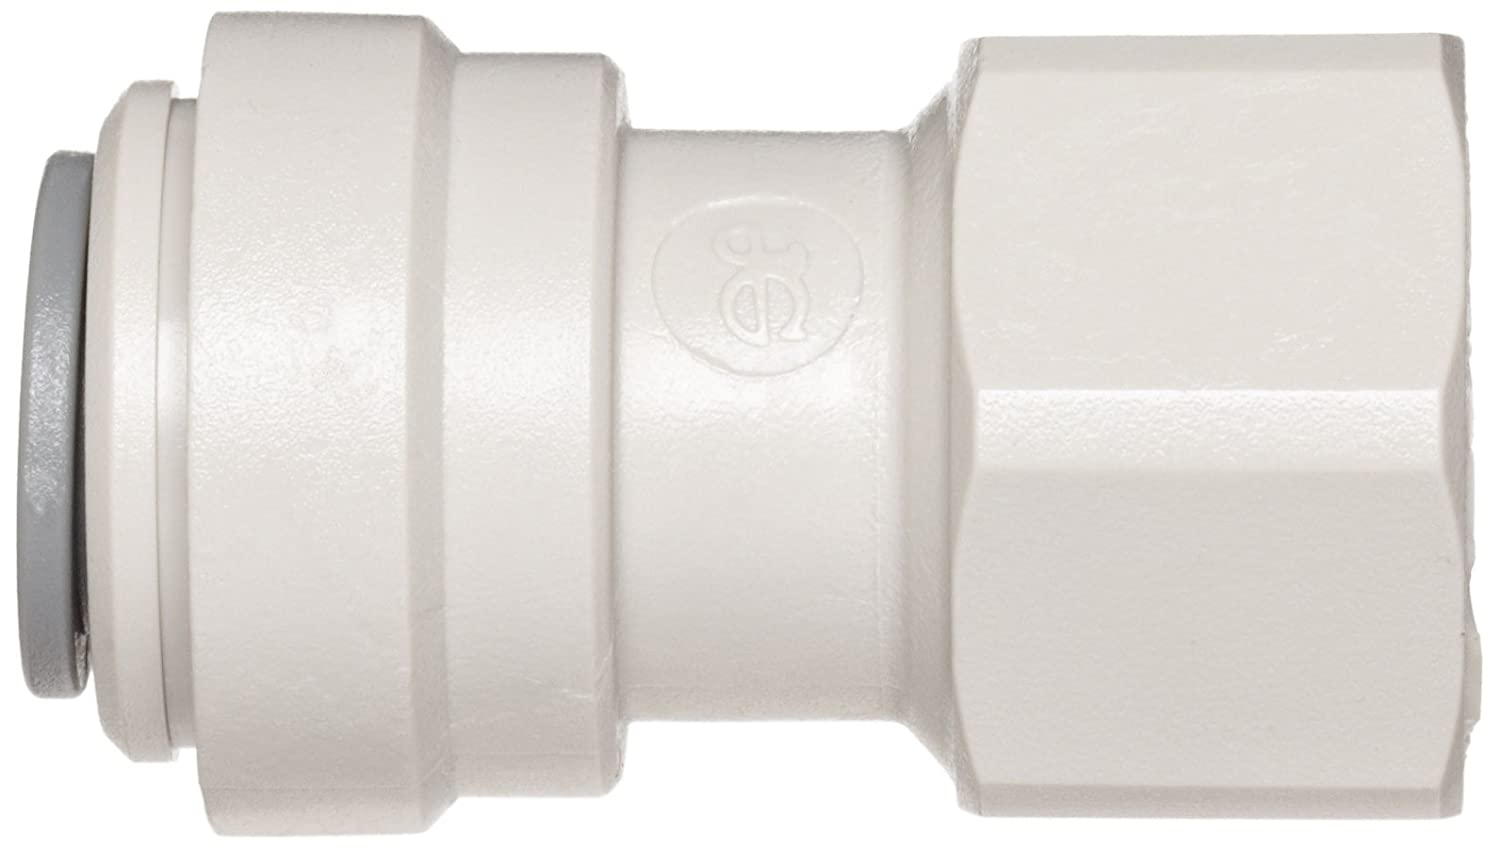 Flat End Adaptor John Guest Acetal Copolymer Tube Fitting Pack of 10 3//8 Tube OD x 1//2 BSP Female